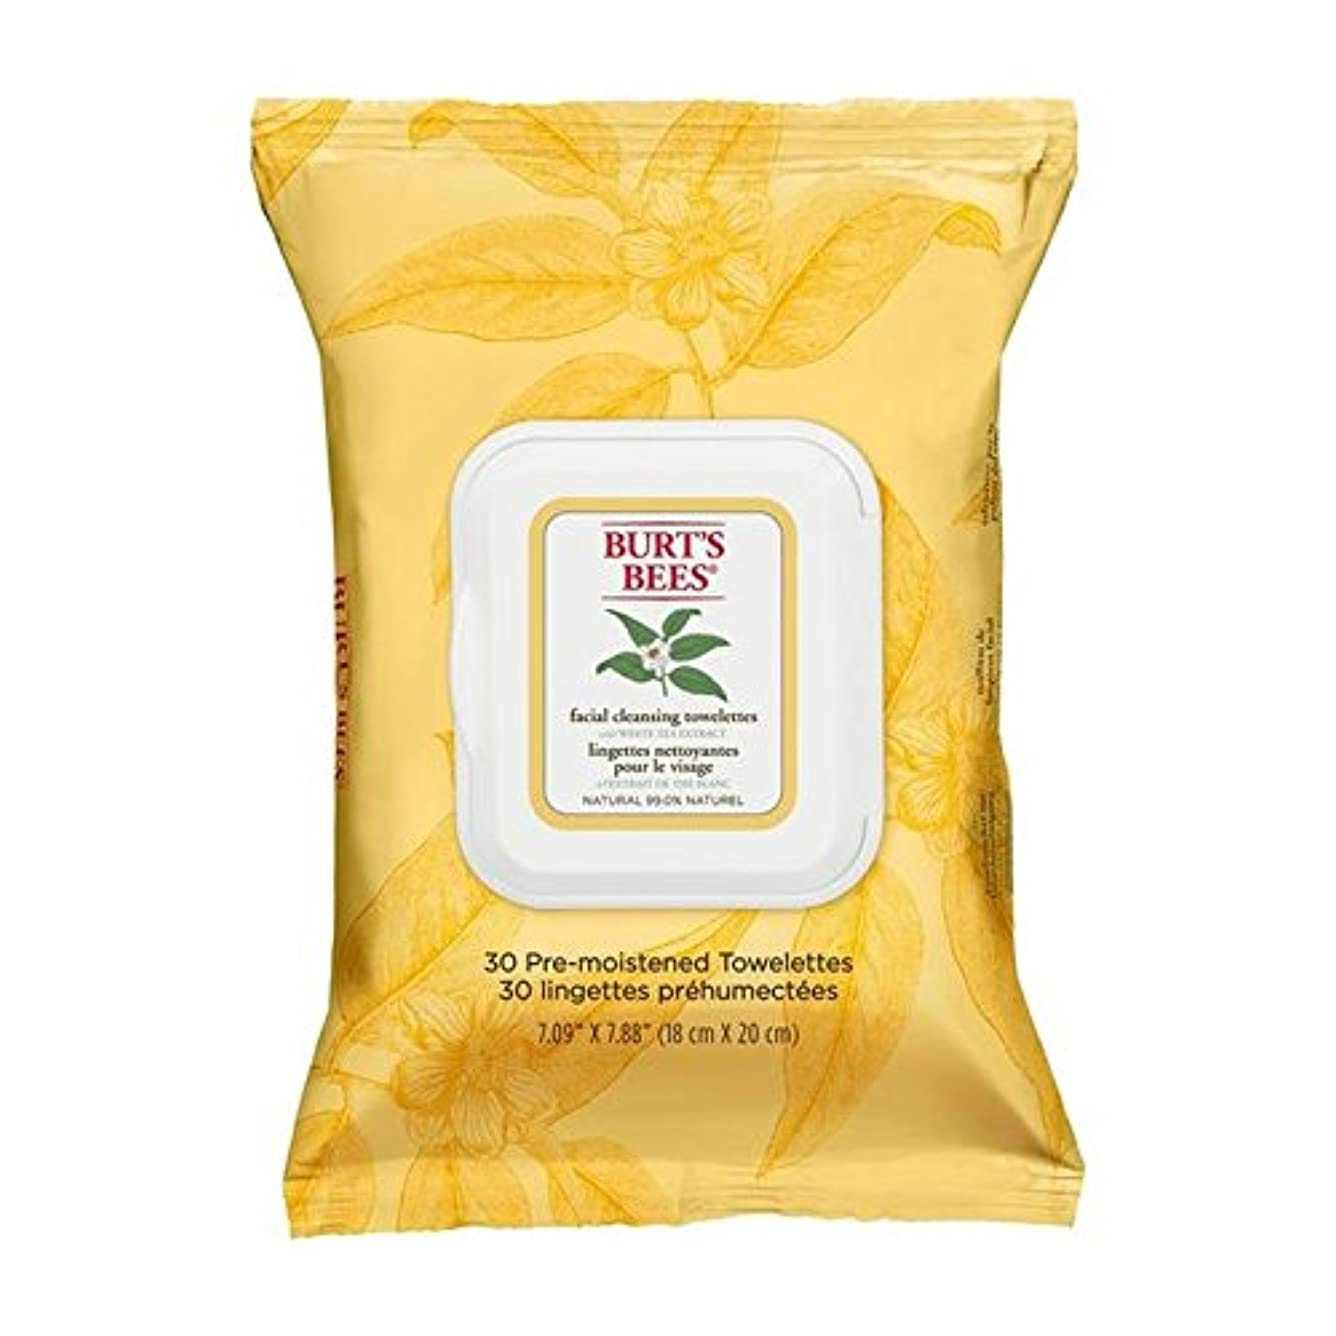 Burt's Bees Facial Cleansing Towelettes with White Tea Extract (Pack of 6) - ホワイトティーエキスとバーツビー洗顔ペーパータオル x6 [並行輸入品]